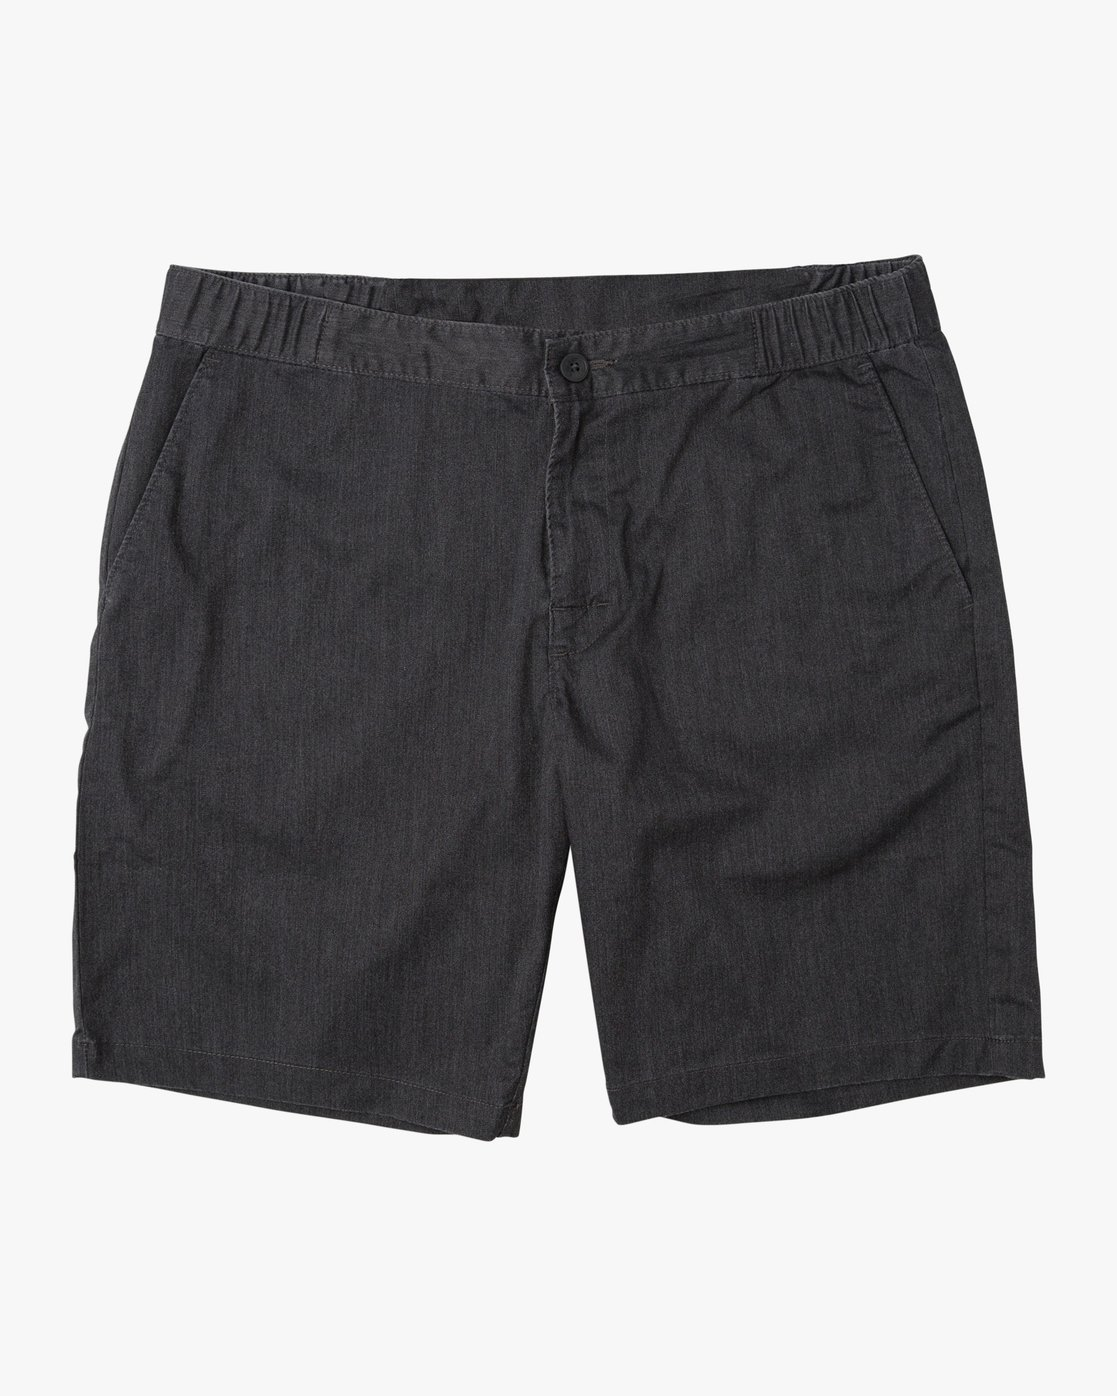 0 All Time Session Short Black M201TRSE RVCA